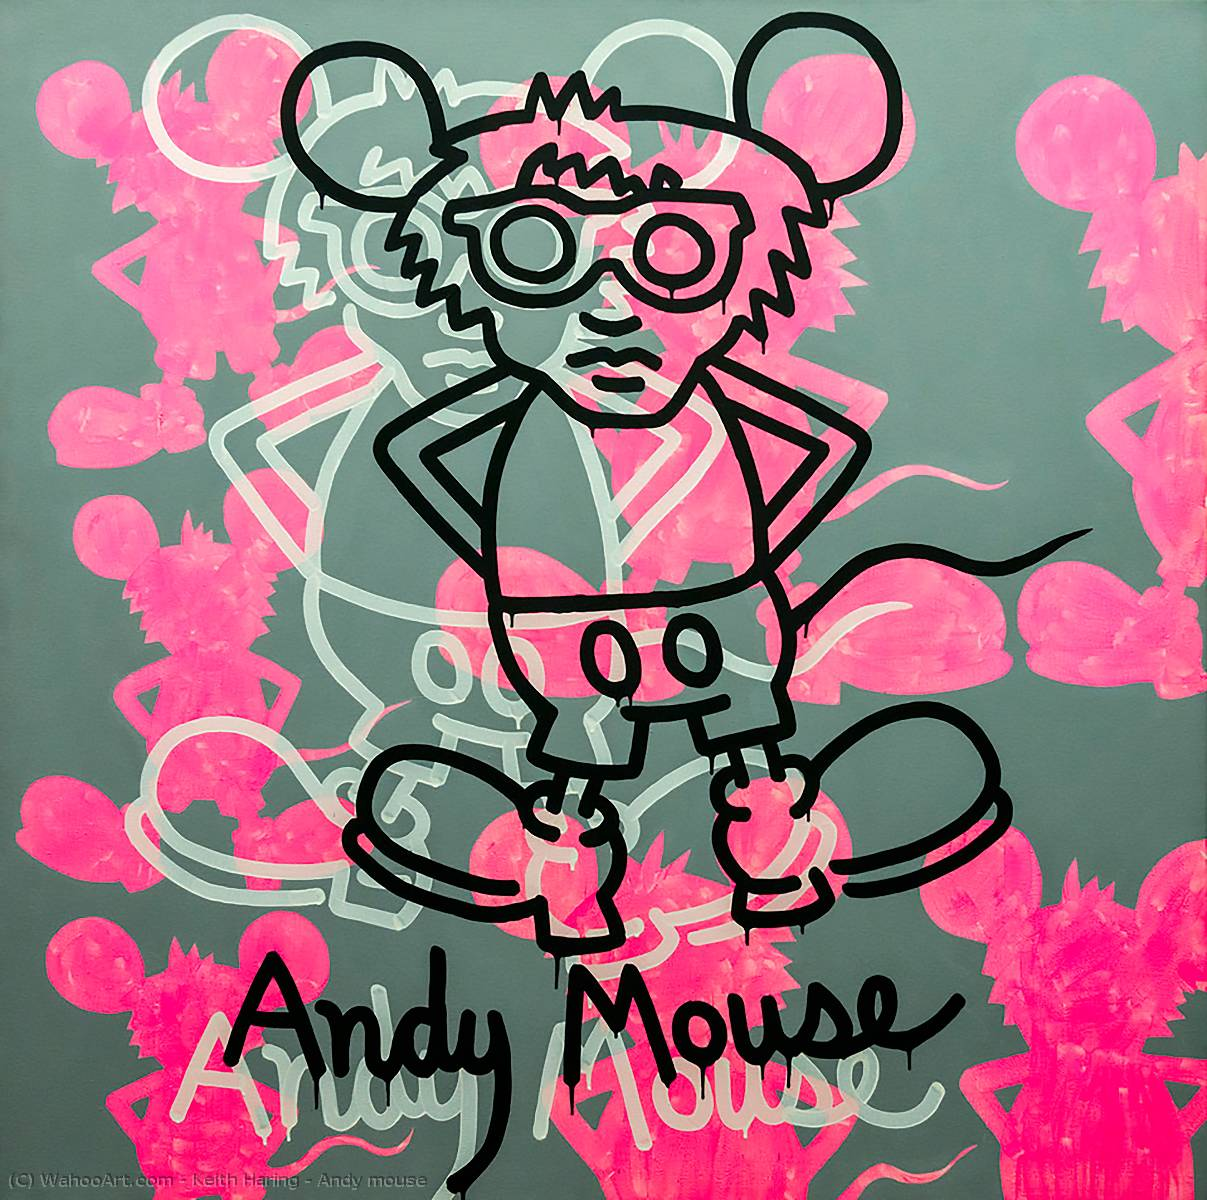 famous painting Andy sorcio of Keith Haring